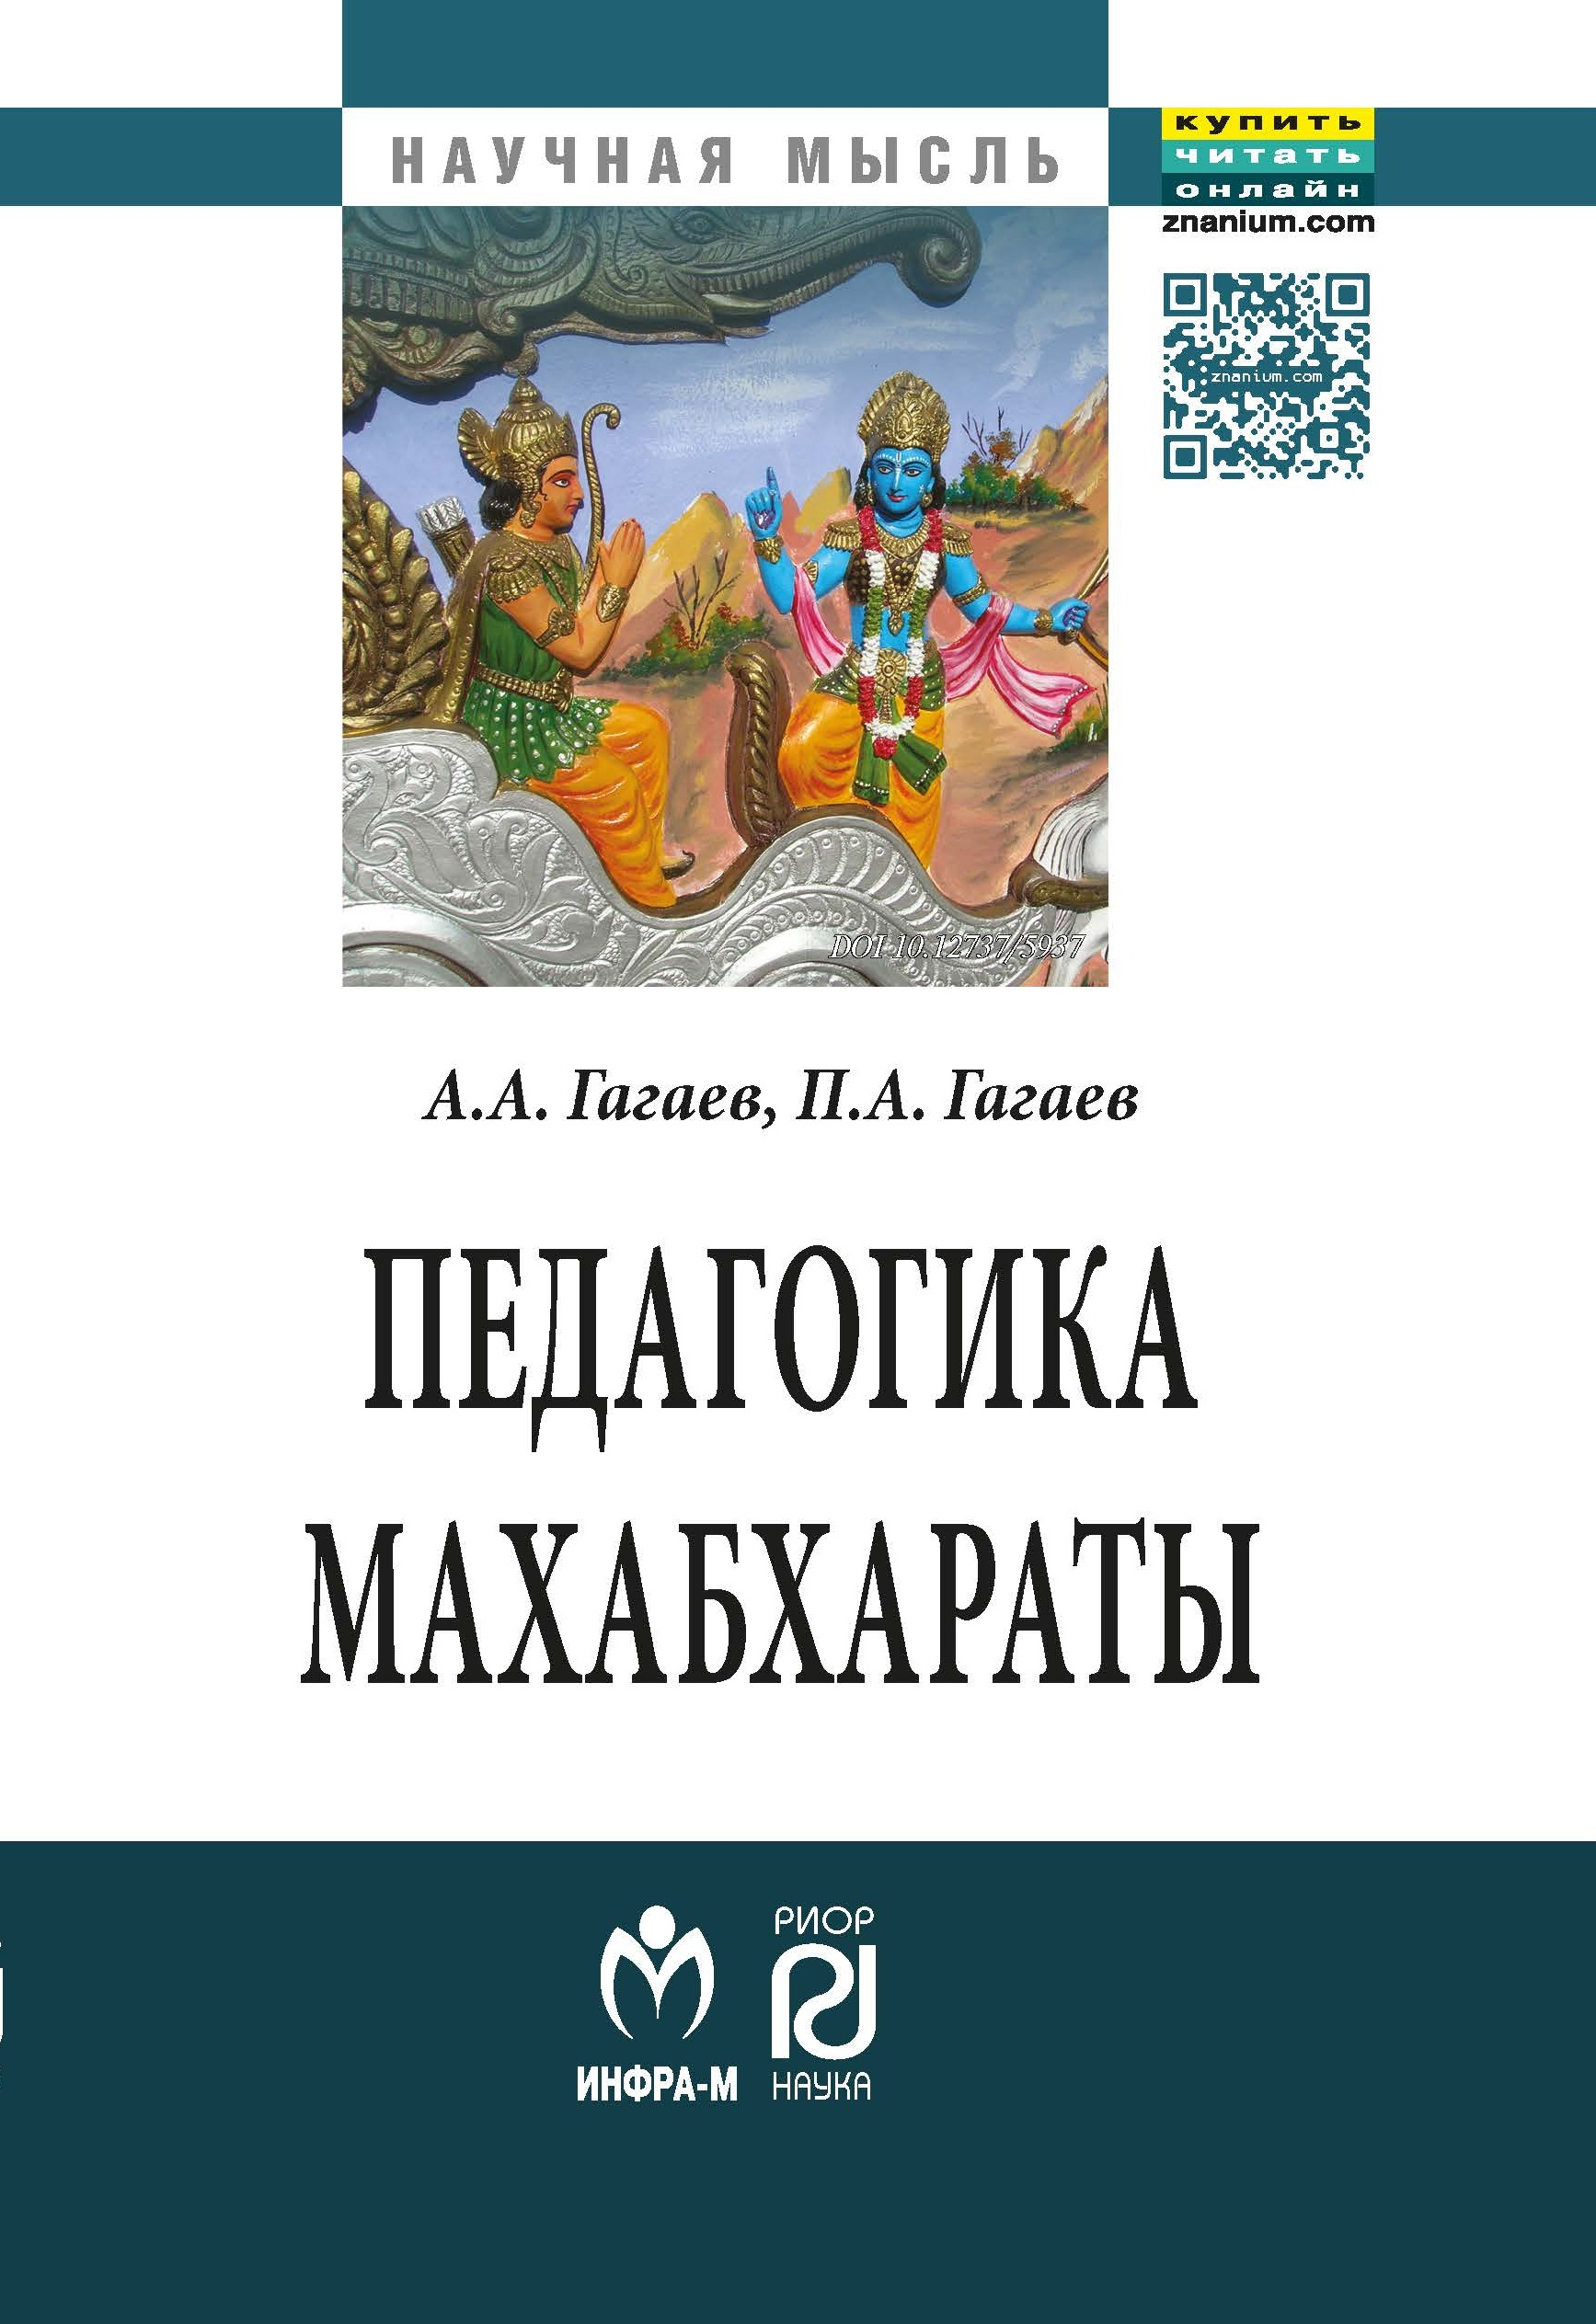 The Mahabharata pedagogy